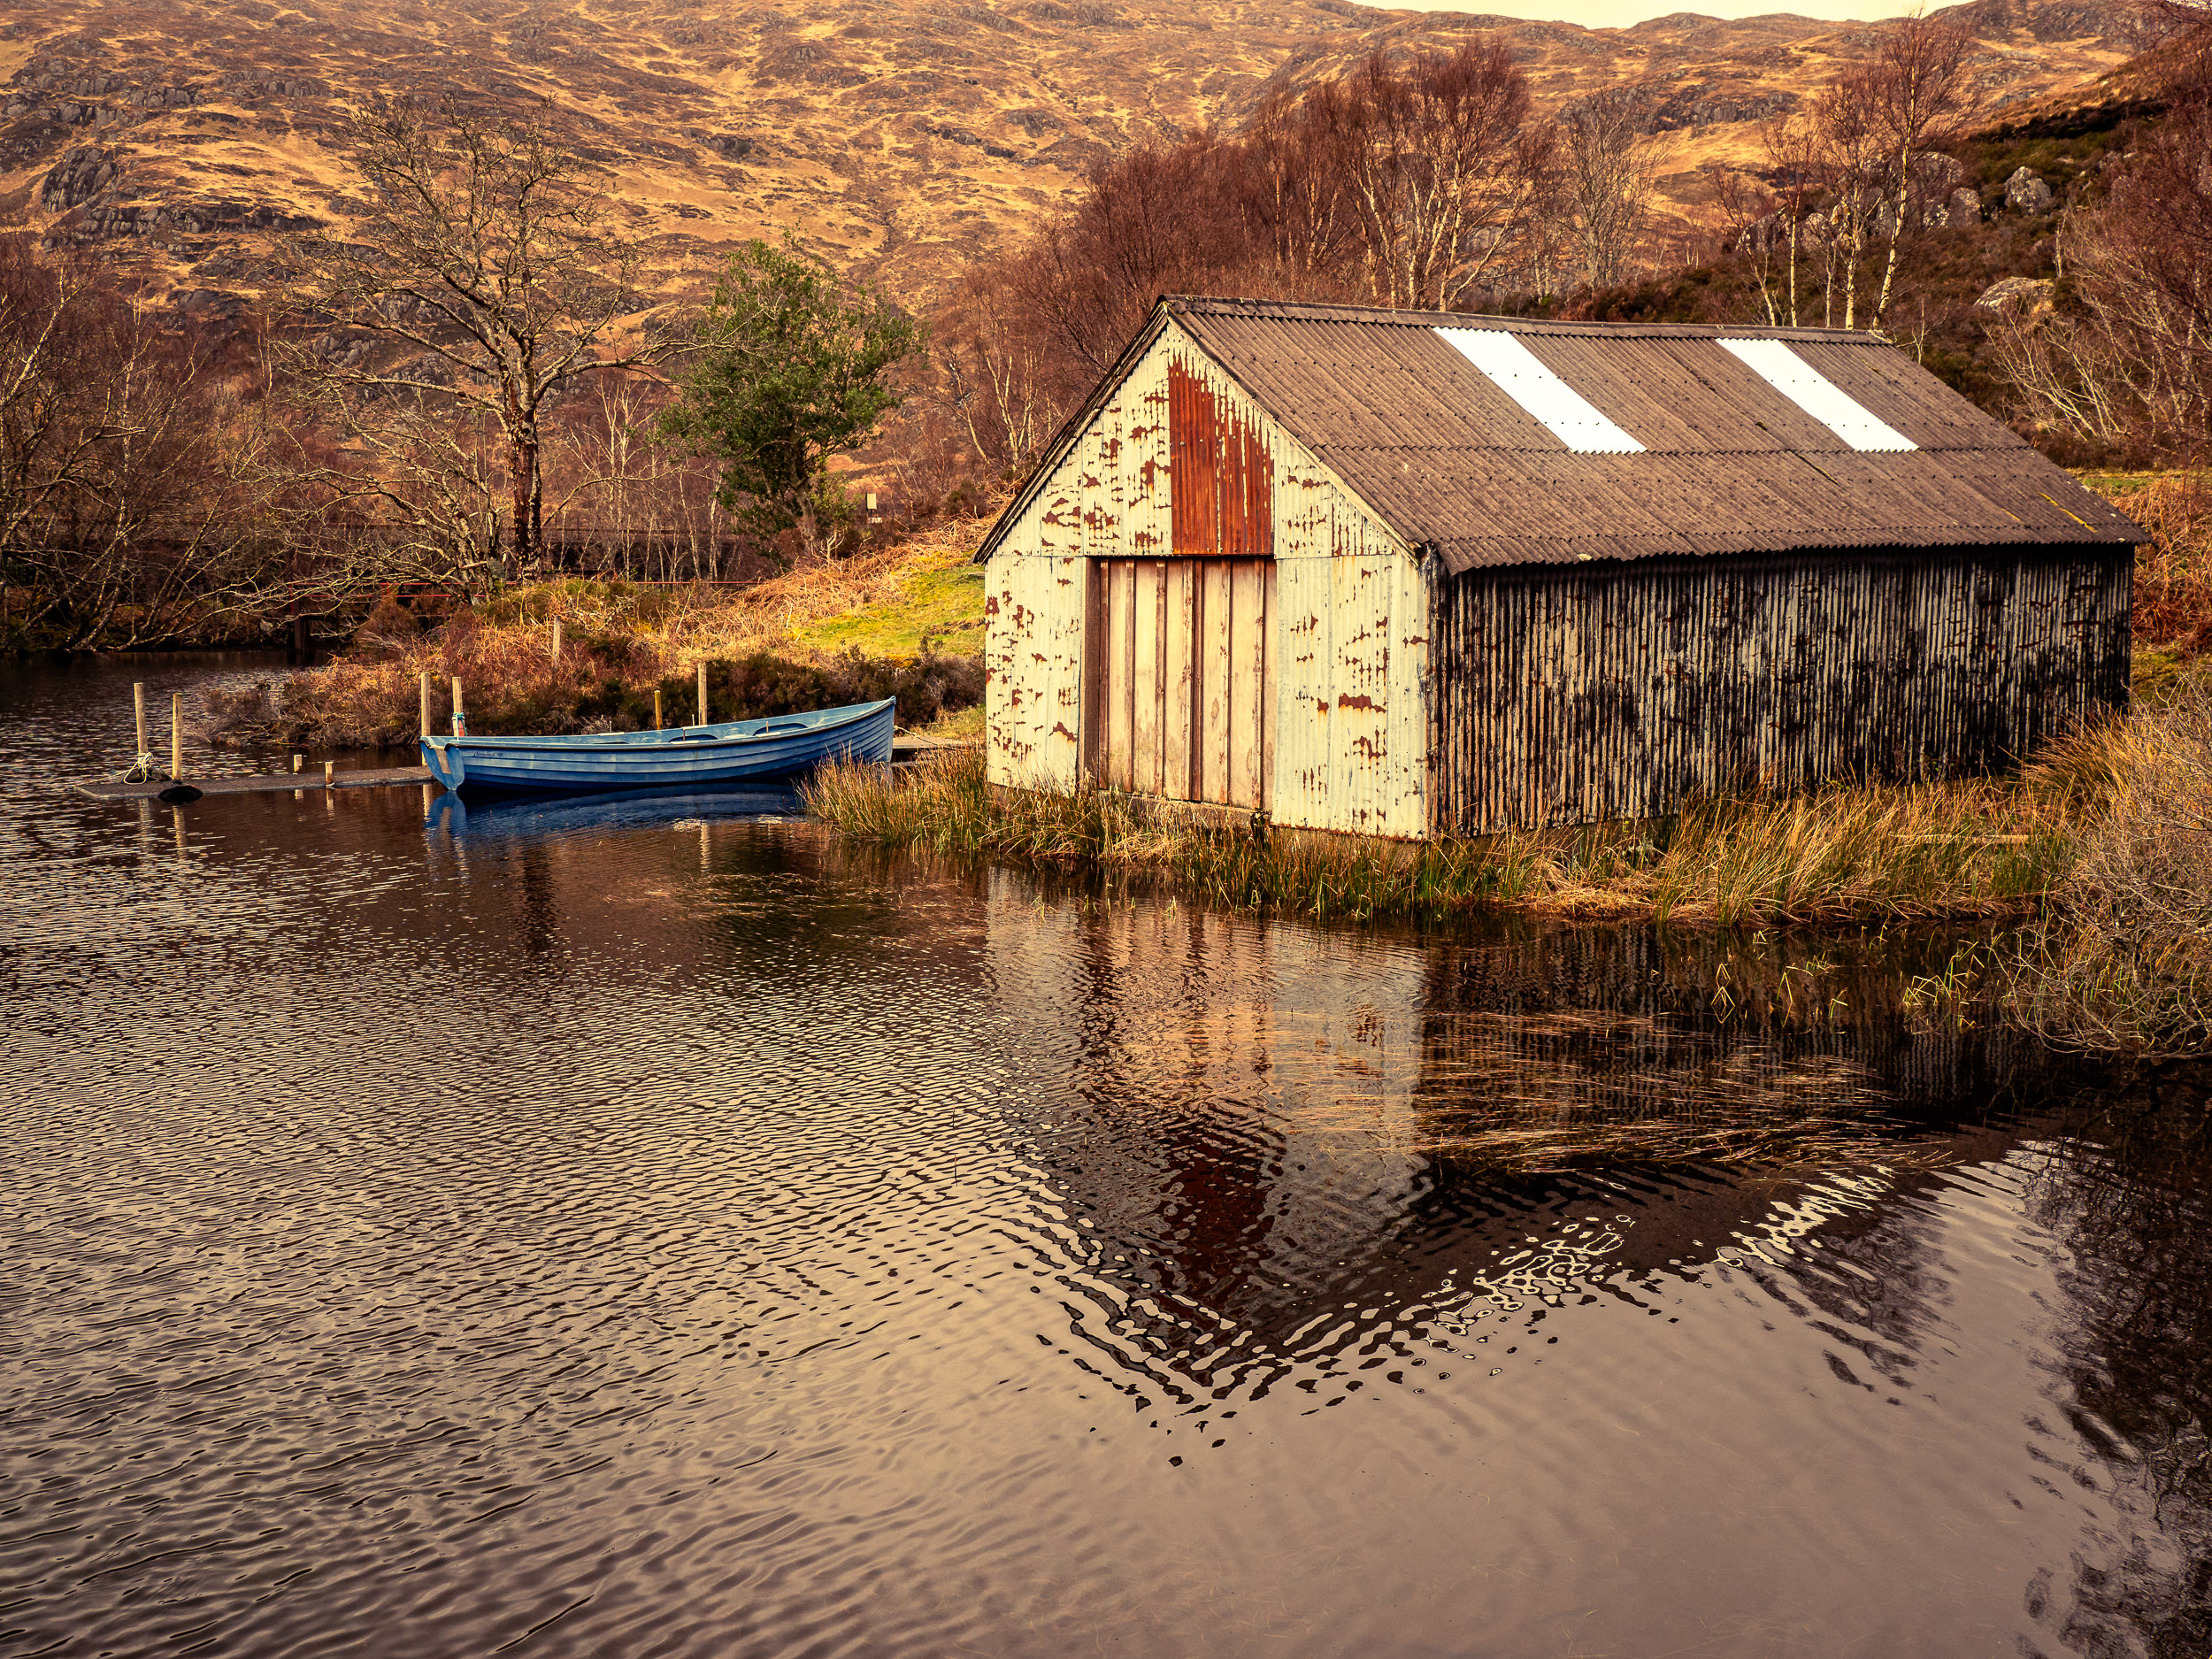 A Boat shed at Loch Eilt - These photographs were made in March 2019 on a workshop with Garry Brannigan.The loch is narrow and laid out on an east-west axis. The railway between Glenfinnan and Mallaig skirts the southern shore.On this occasion on an afternoon of spring sunshine I happened upon a boat shed at the western end of the loch. The thought occurred to me that few of the railway passengers would look in this direction given that they had just experienced the Harry Potter moment looking to the south.